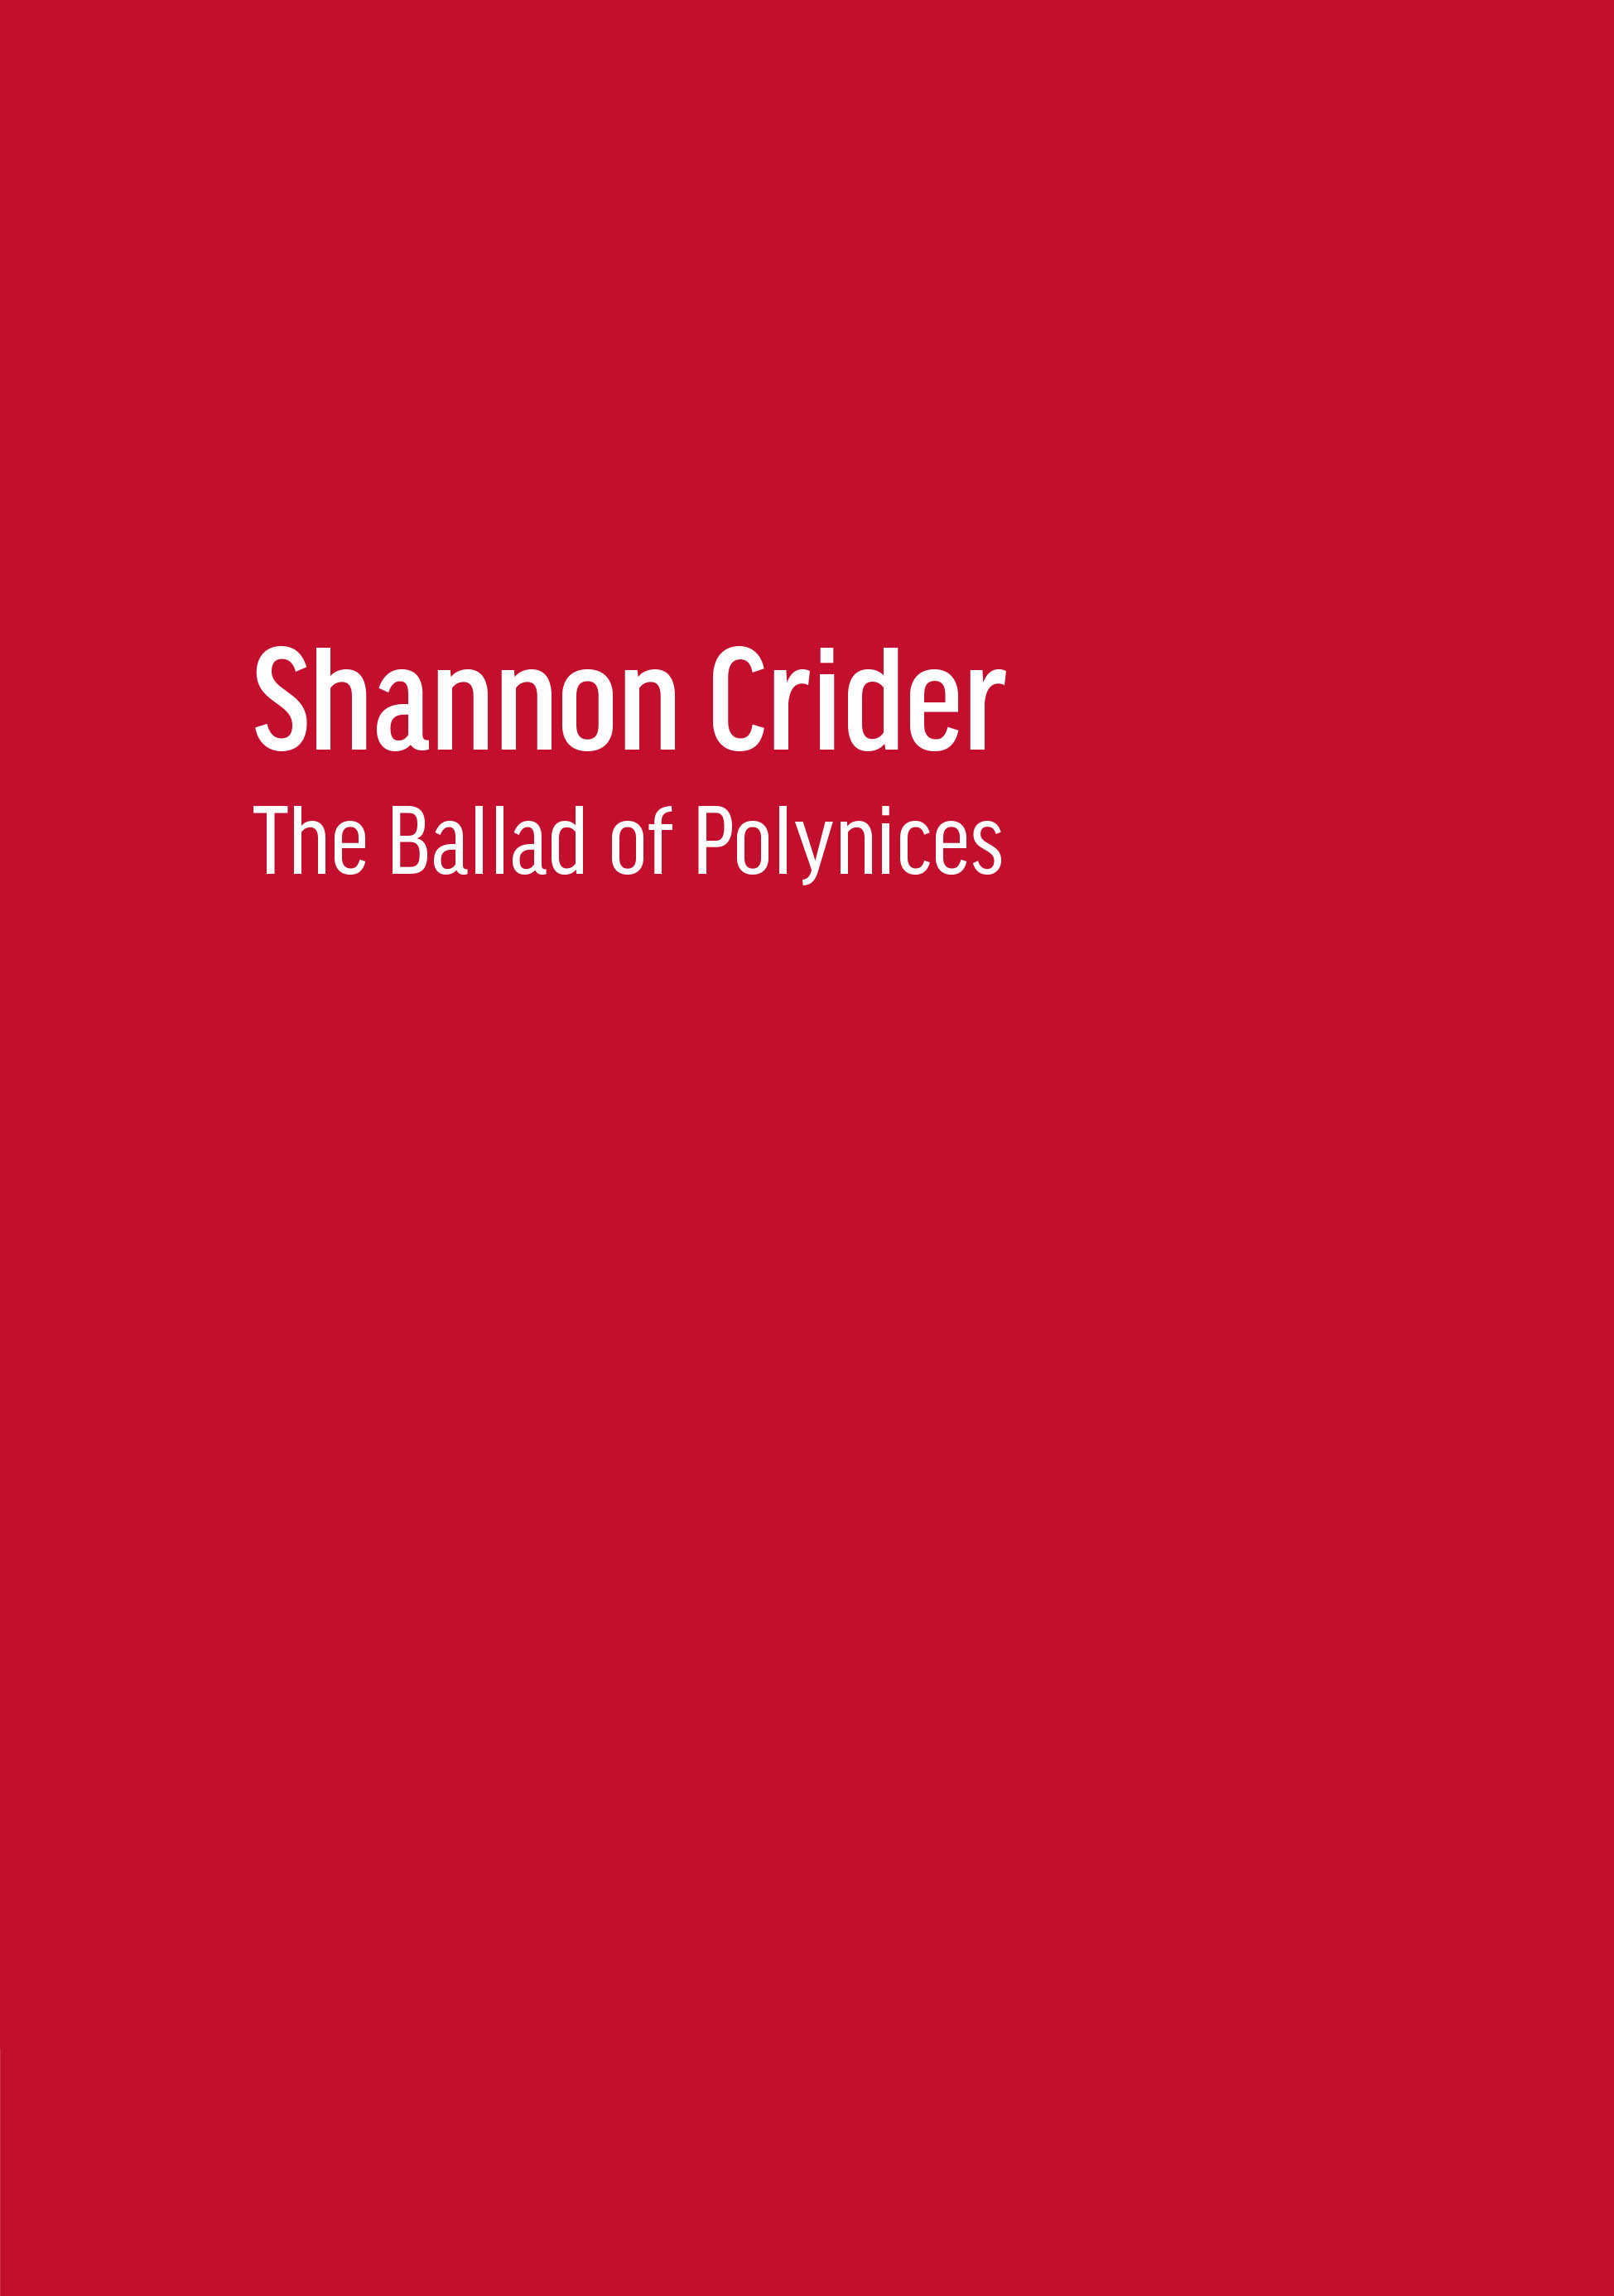 SHANNON CRIDEr  The ballad of polynices  2014